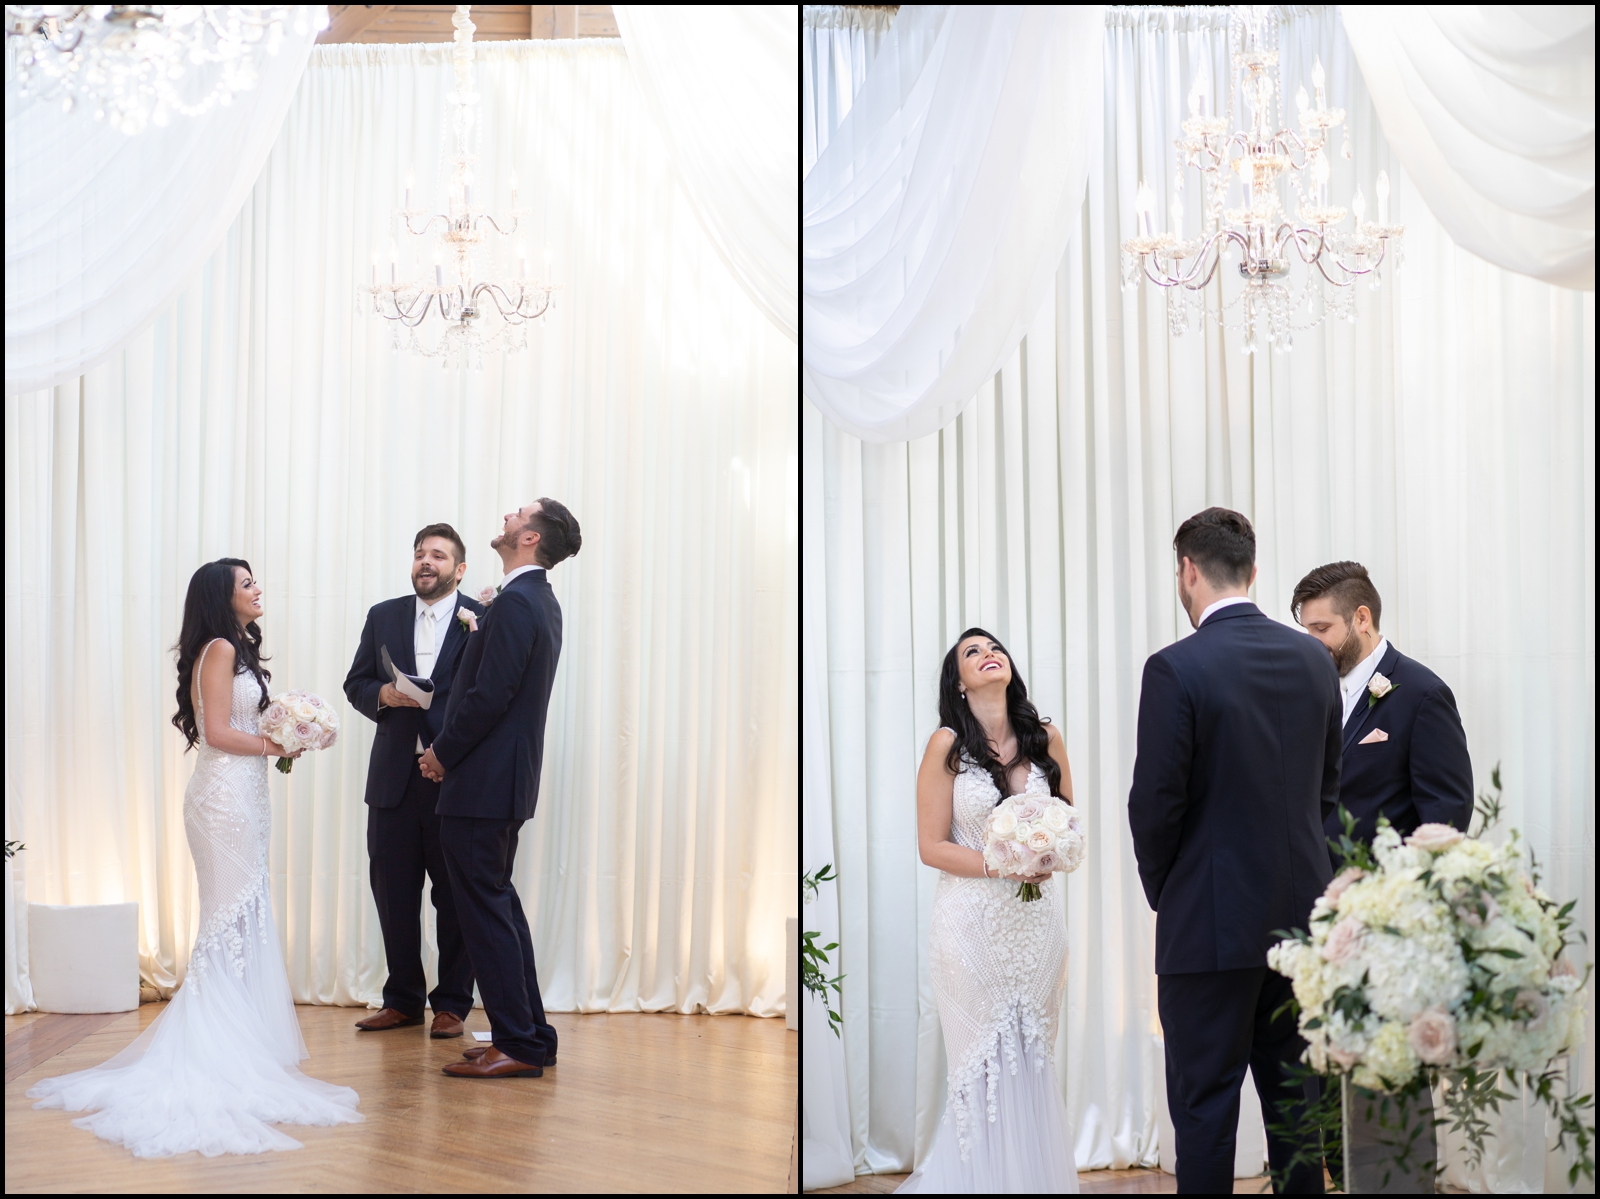 Bride and groom laugh at their wedding ceremony